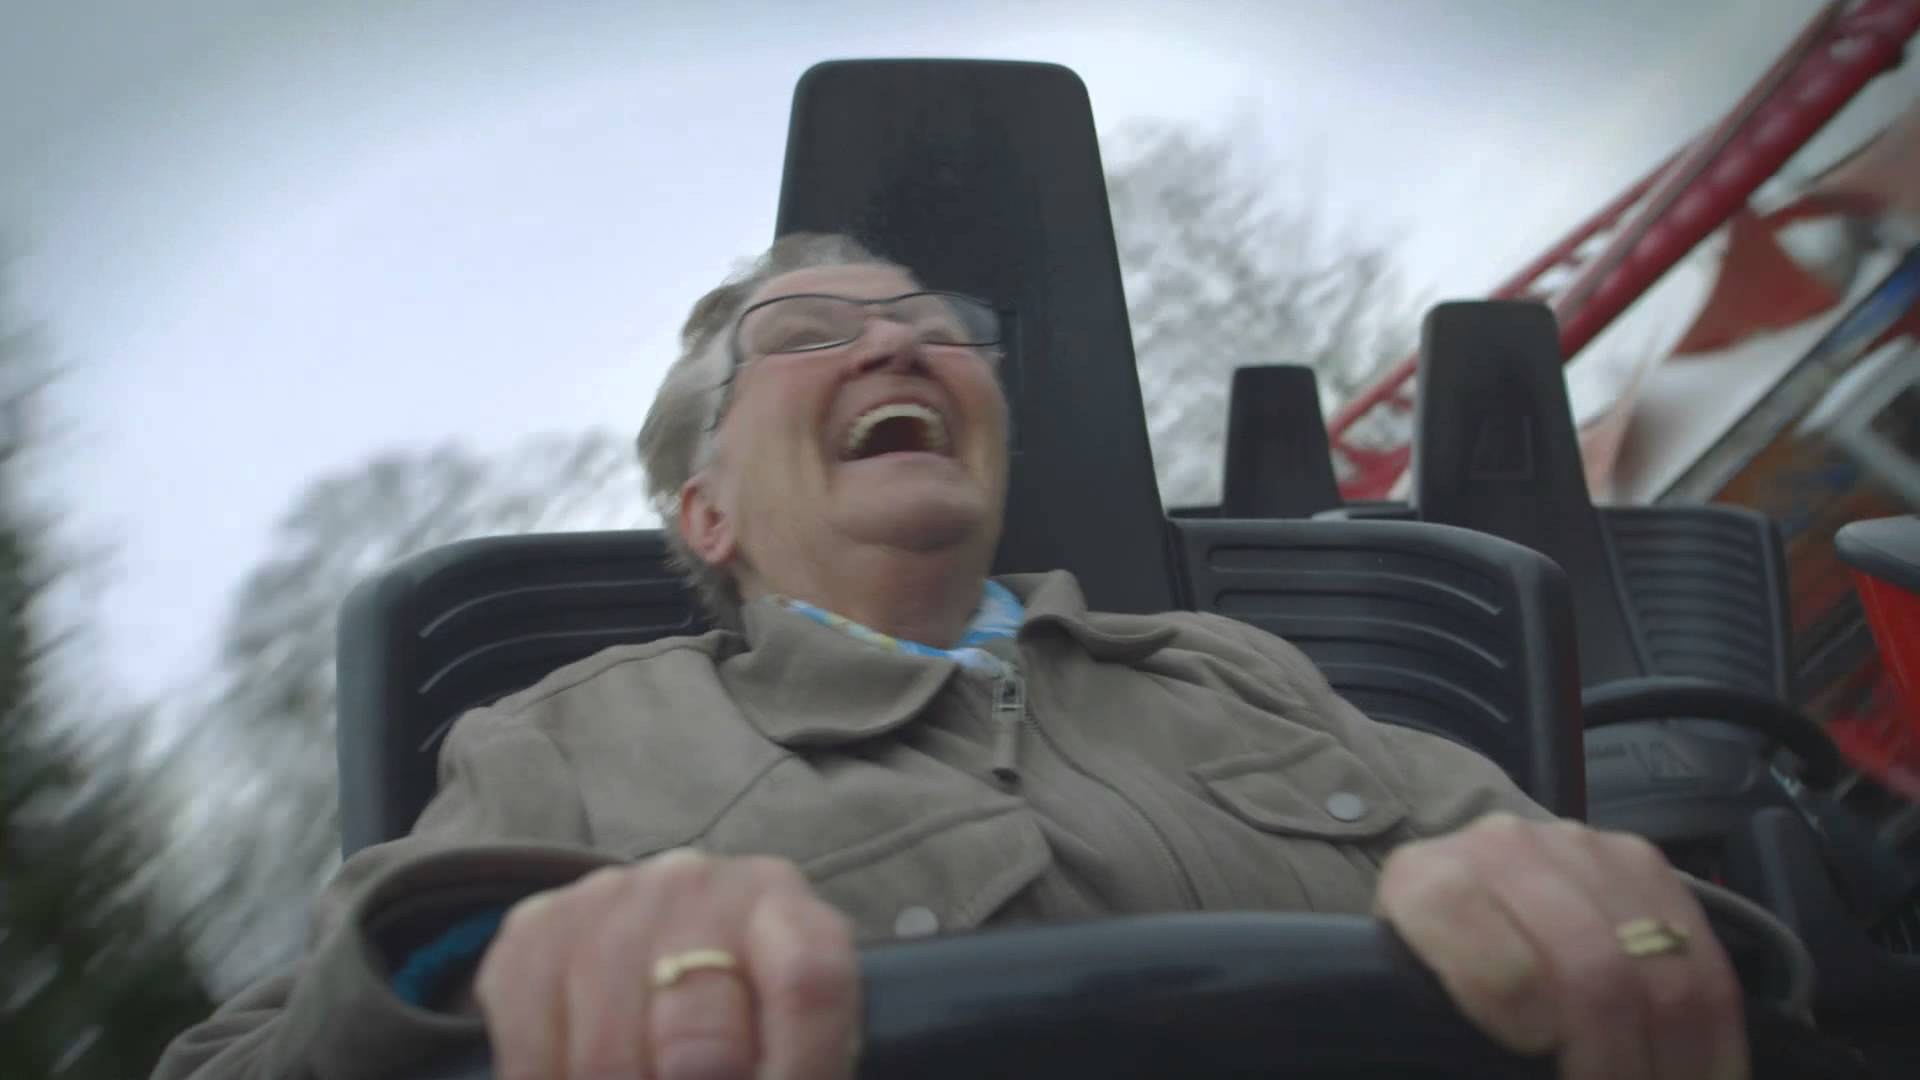 Nan on a roller coaster